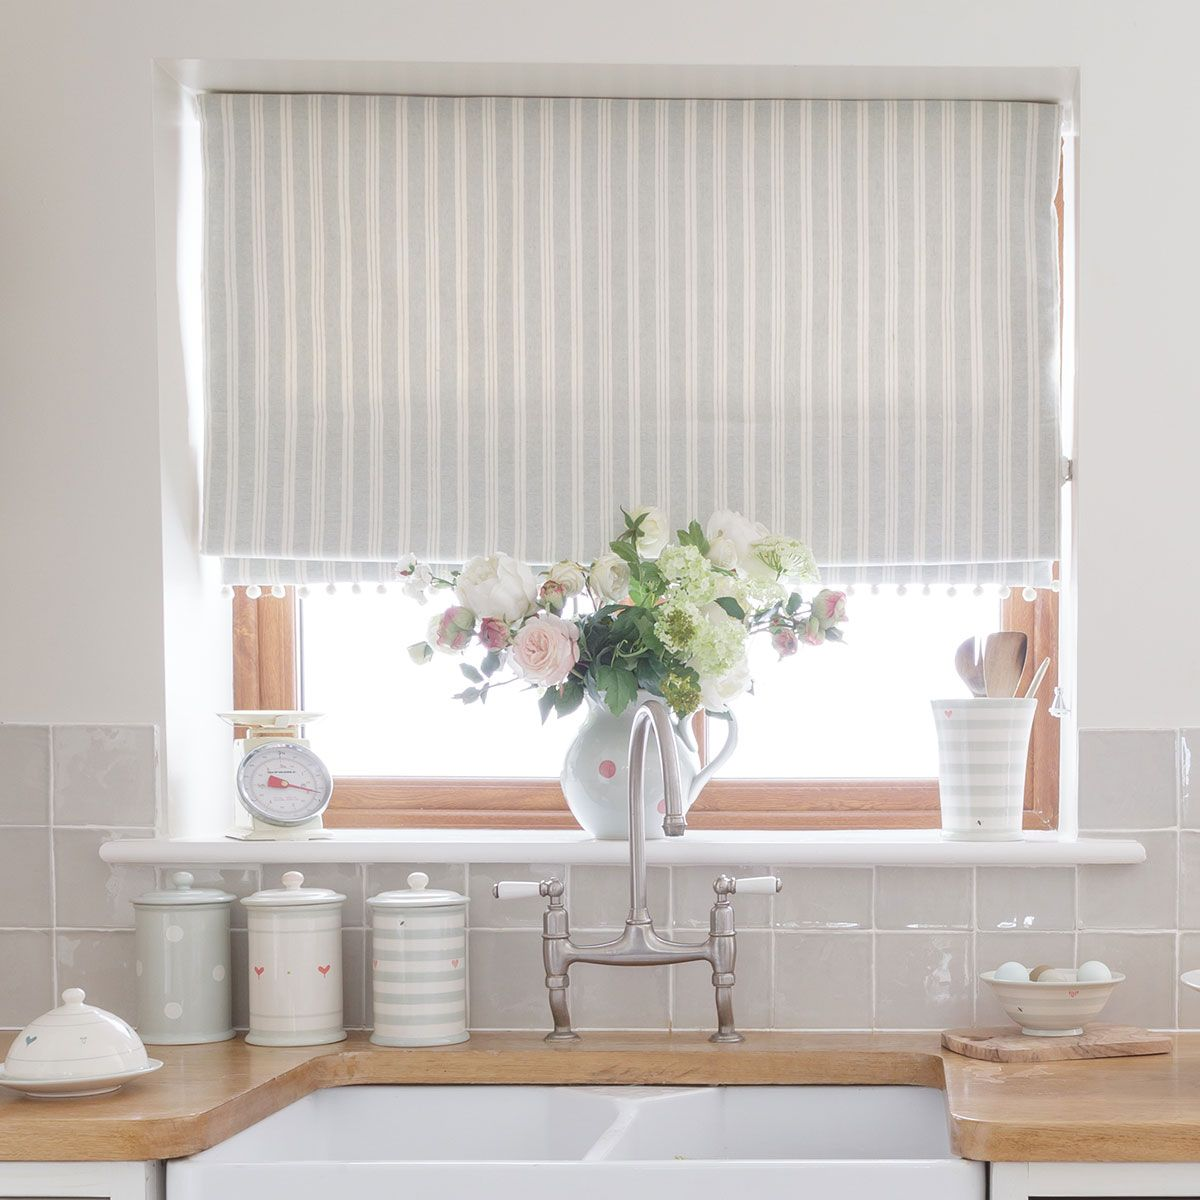 Exceptionnel Country Blind Inspiration   Sea/Ivory Cambridge Stripe Blinds   Creating  The Perfect Laid Back Kitchen, Perfect With Ivory Pom Pom Trim.